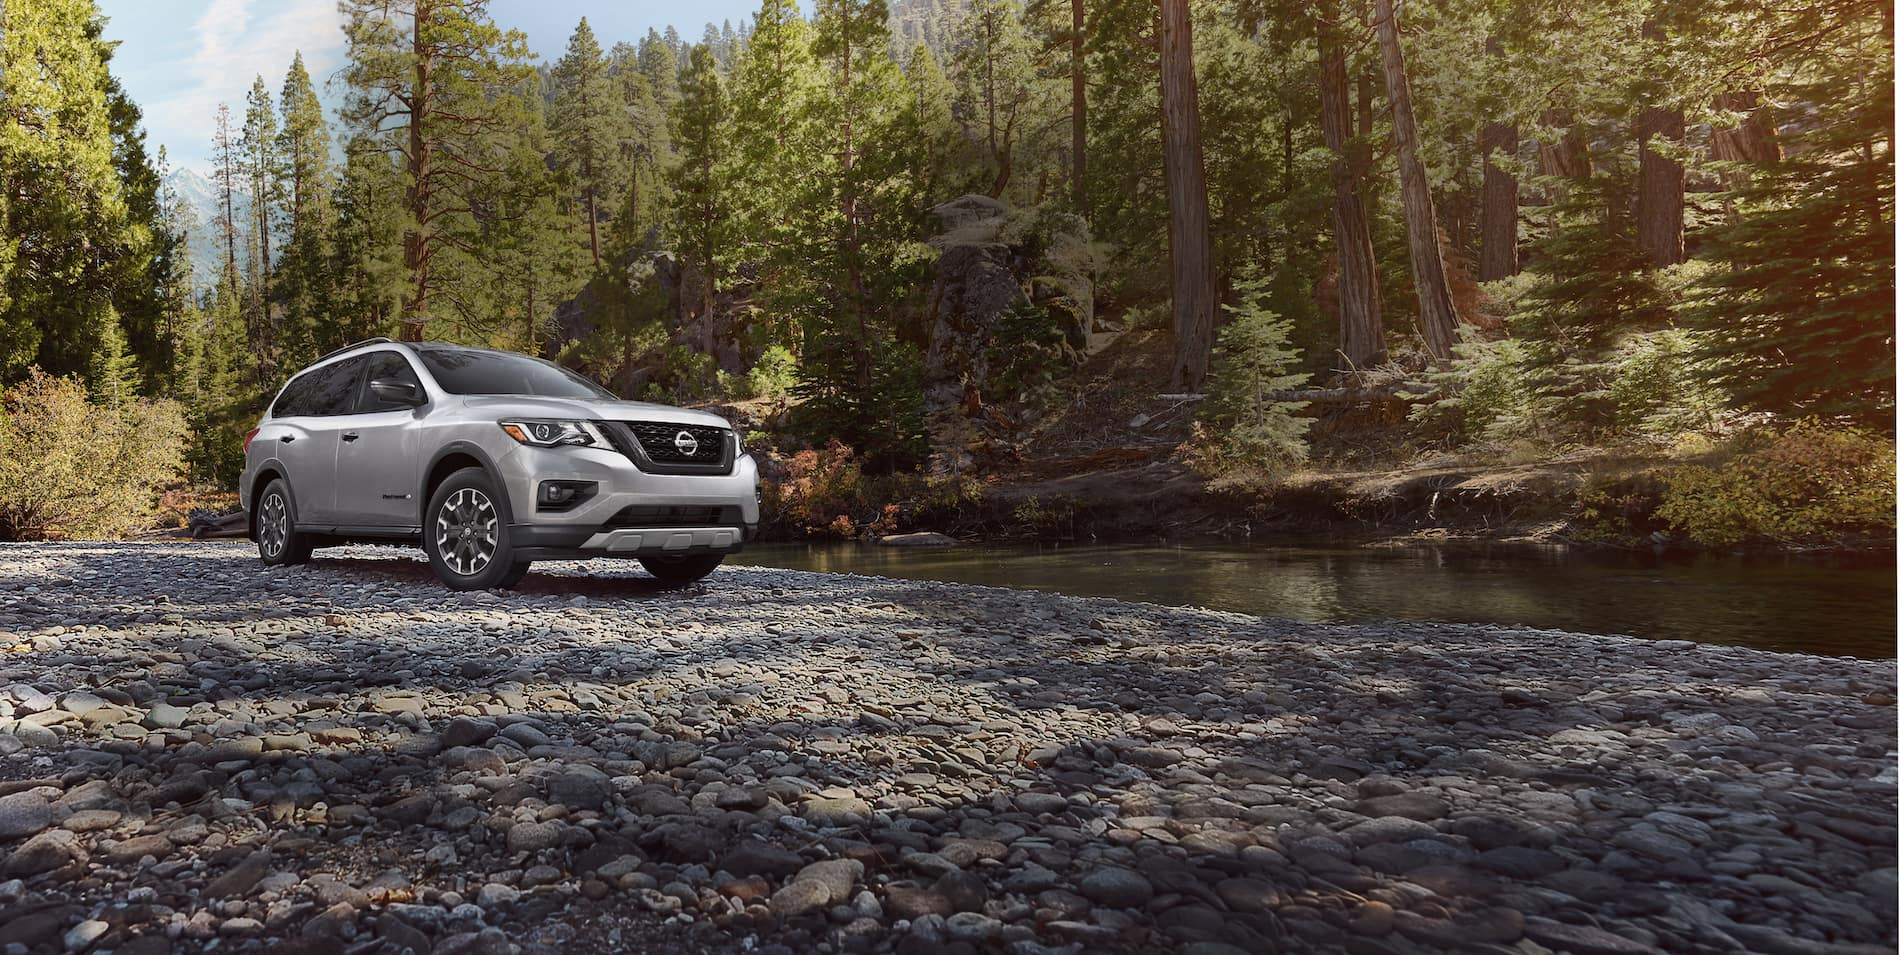 The features and trim levels of the 2019 Nissan Pathfinder | Grey 2019 Nissan Pathfinder parking near the river